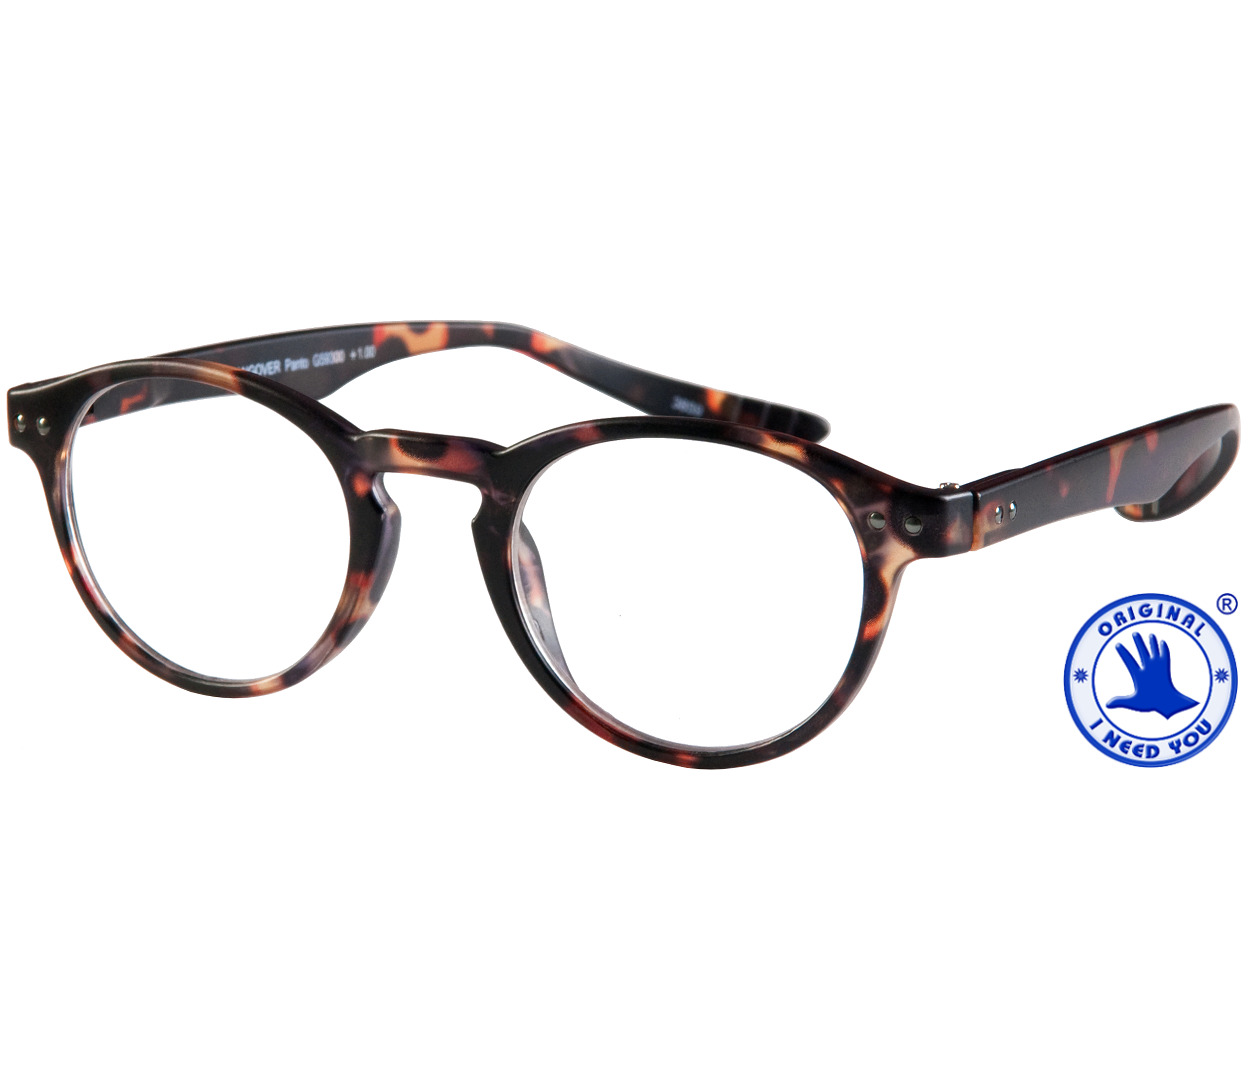 Main Image (Angle) - Jigsaw (Tortoiseshell) Neck Hanging Reading Glasses